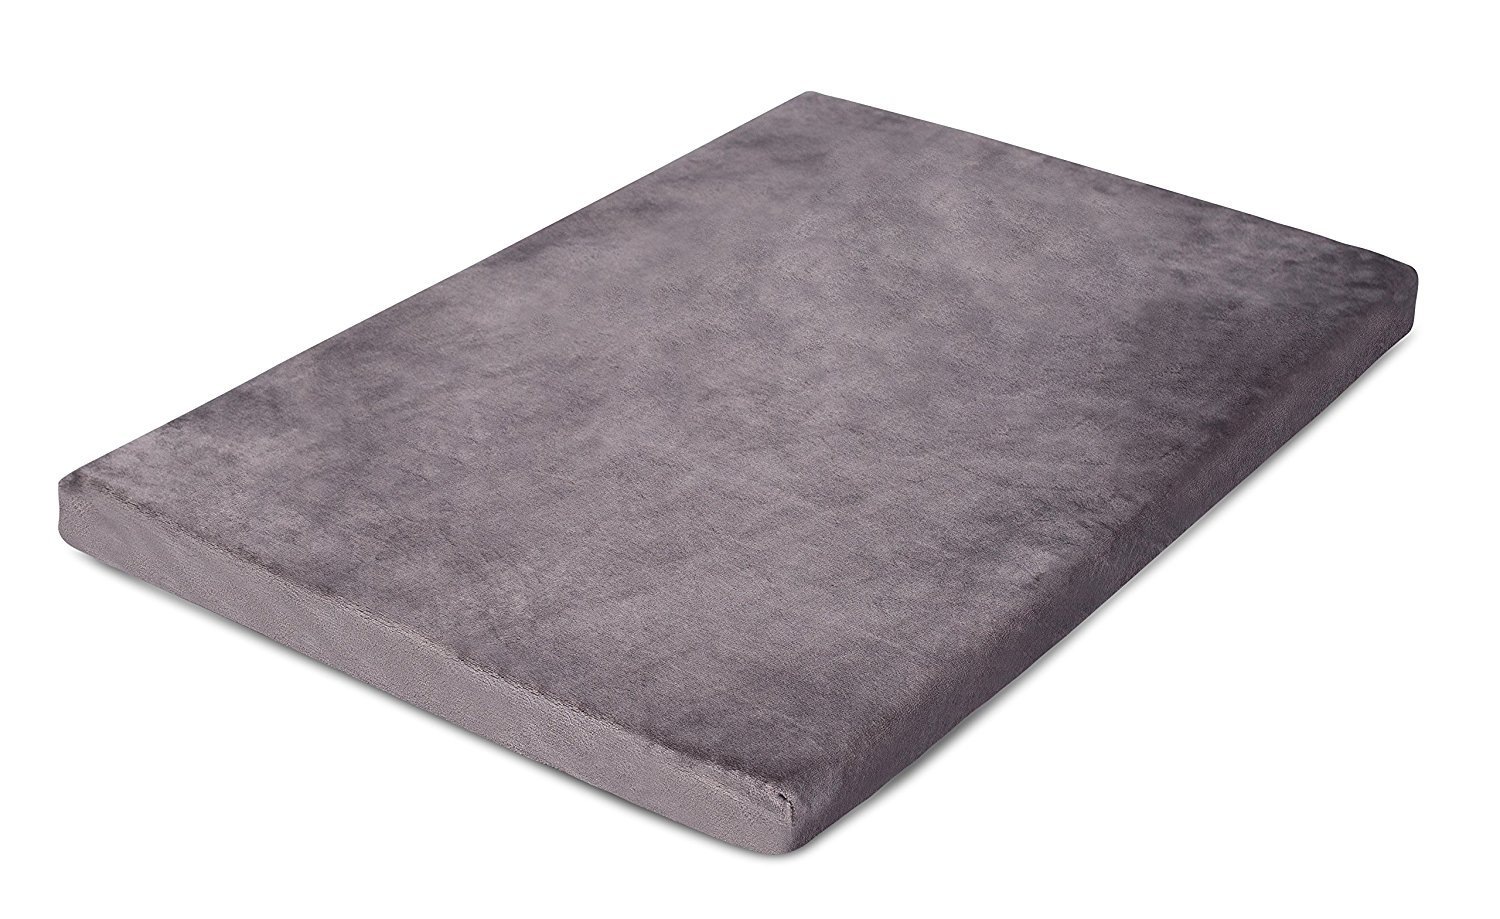 BIRDROCK HOME 2 Memory Foam Dog Beds – Ultra Soft Plush Pet Bed – Removable Cover – Pet – Crate Bed